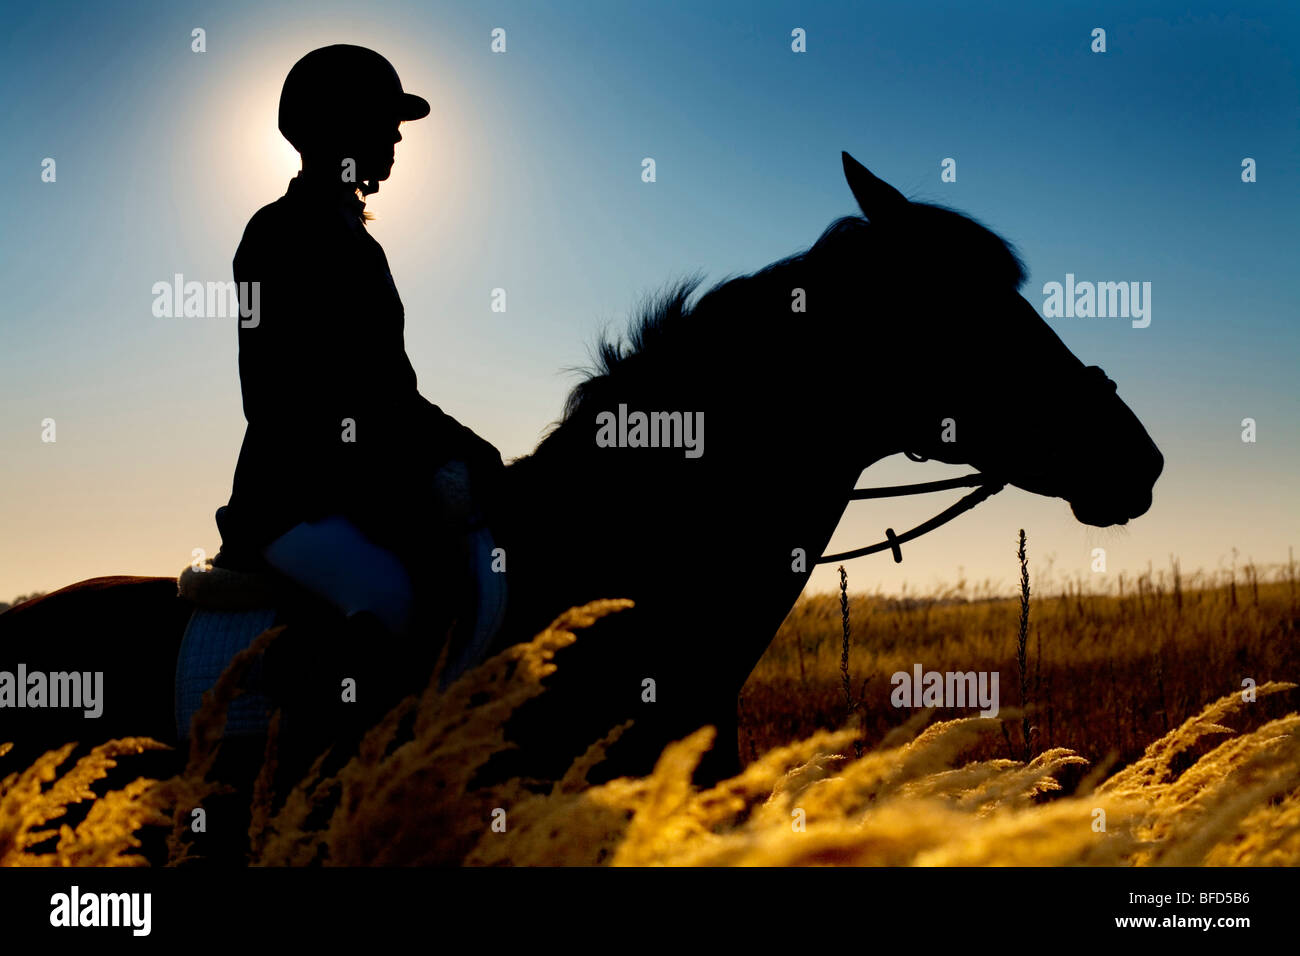 Jockey and horse silhouettes in the field in summer time - Stock Image